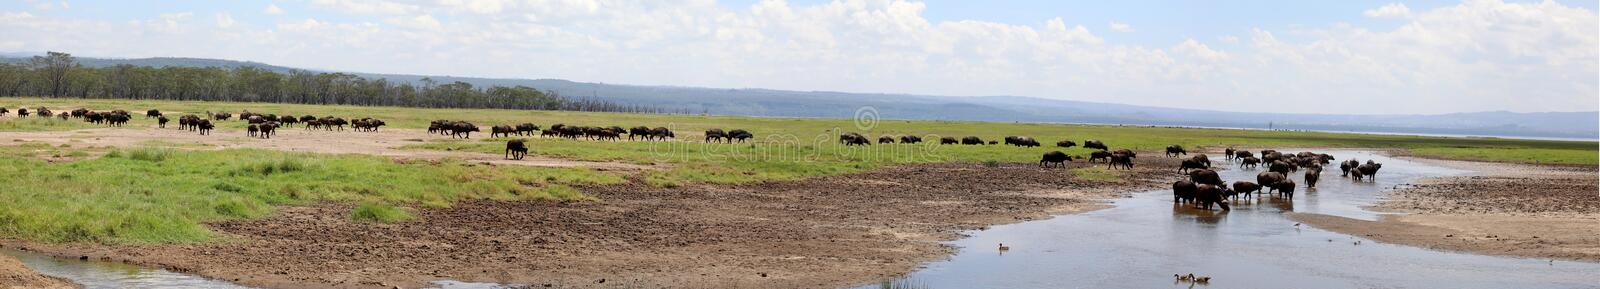 Zebra and wildebeest crossing a river n masai mara. Zebra and wildebeast migrating in the masai mara game park stock photos